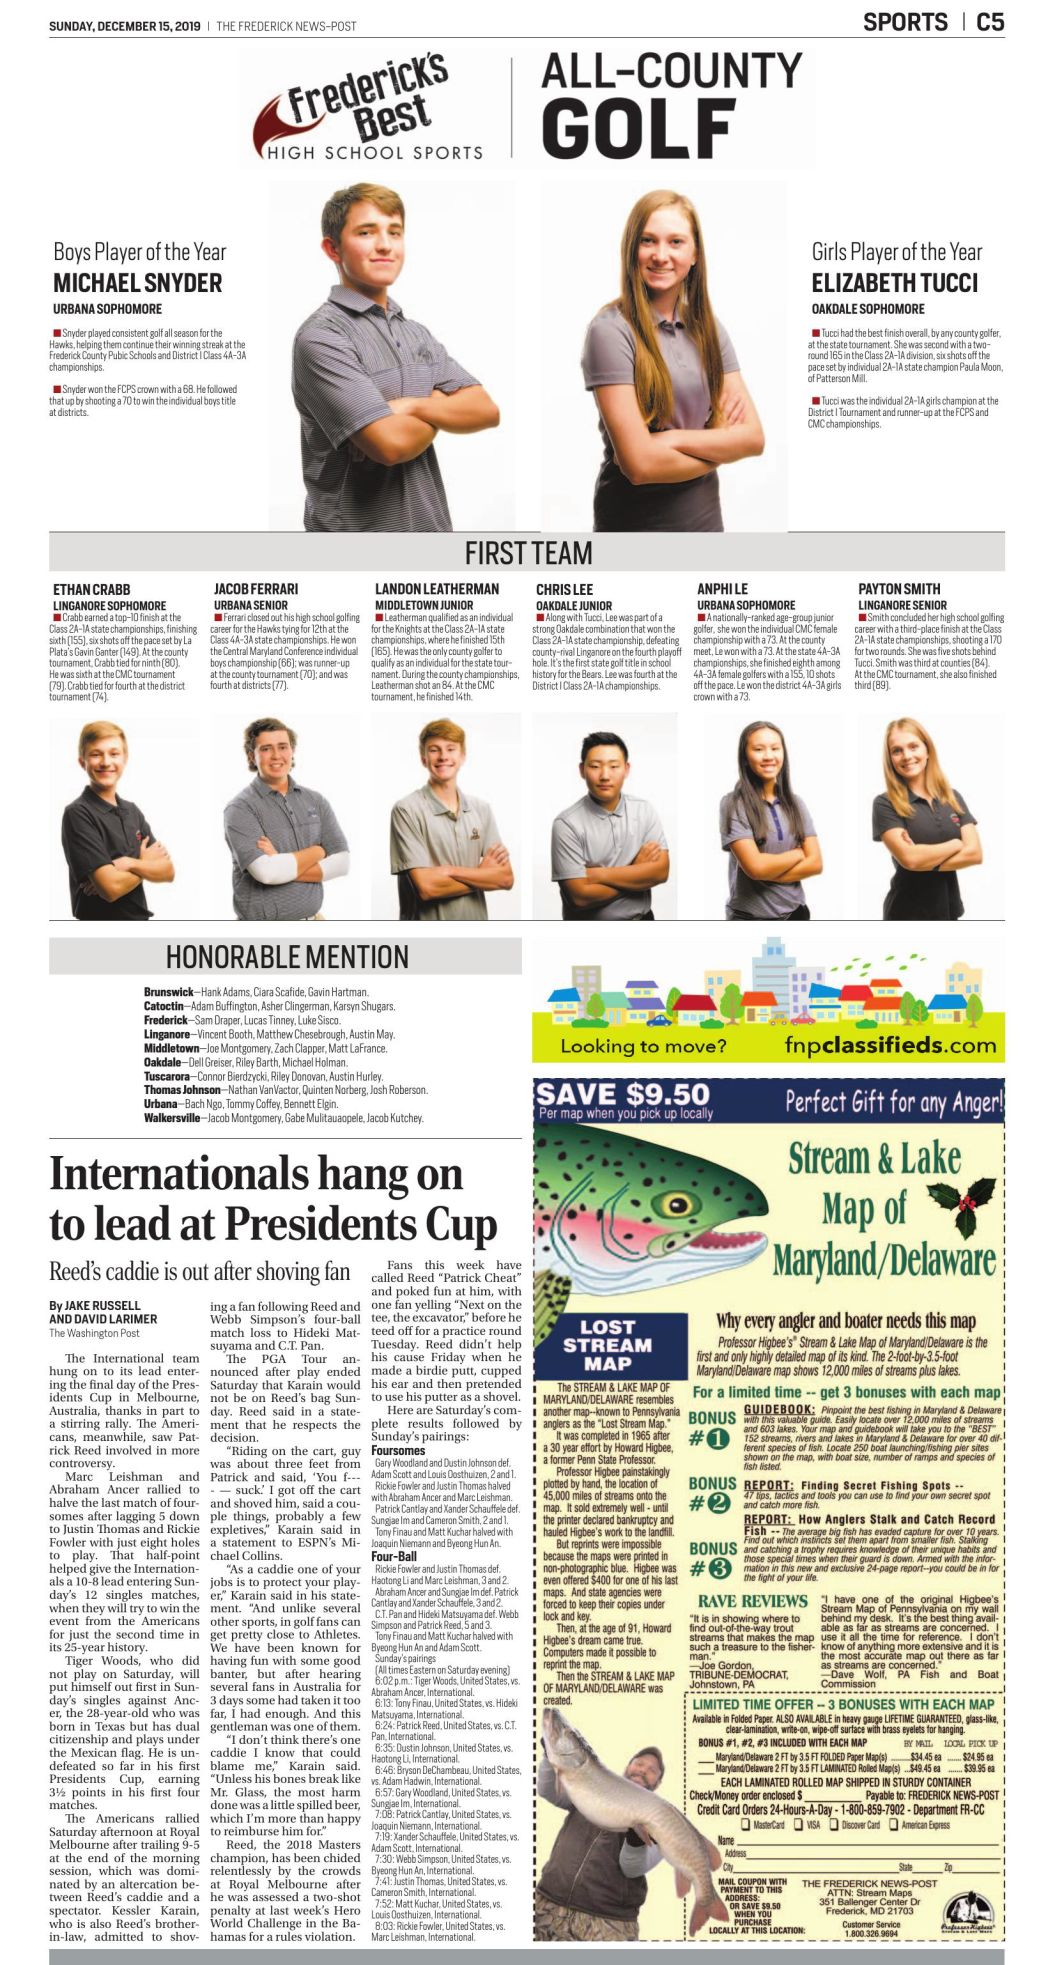 2019 All-County Golf